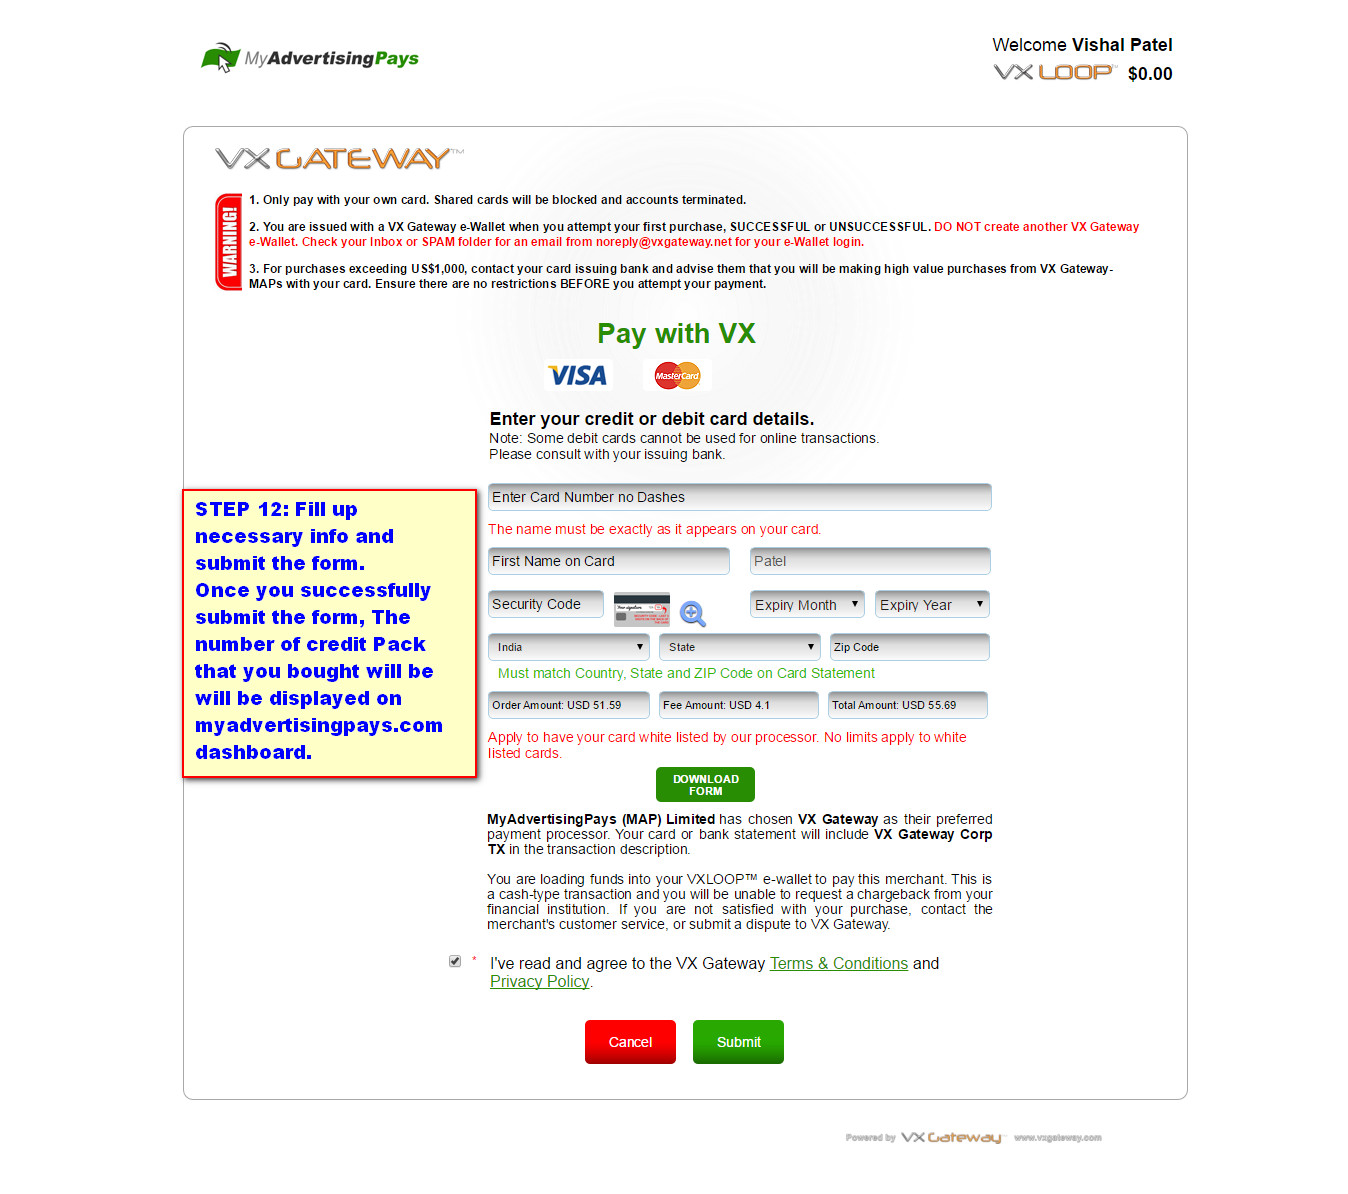 How To Buy Credit Pack In Myadvertisingpays Step 12